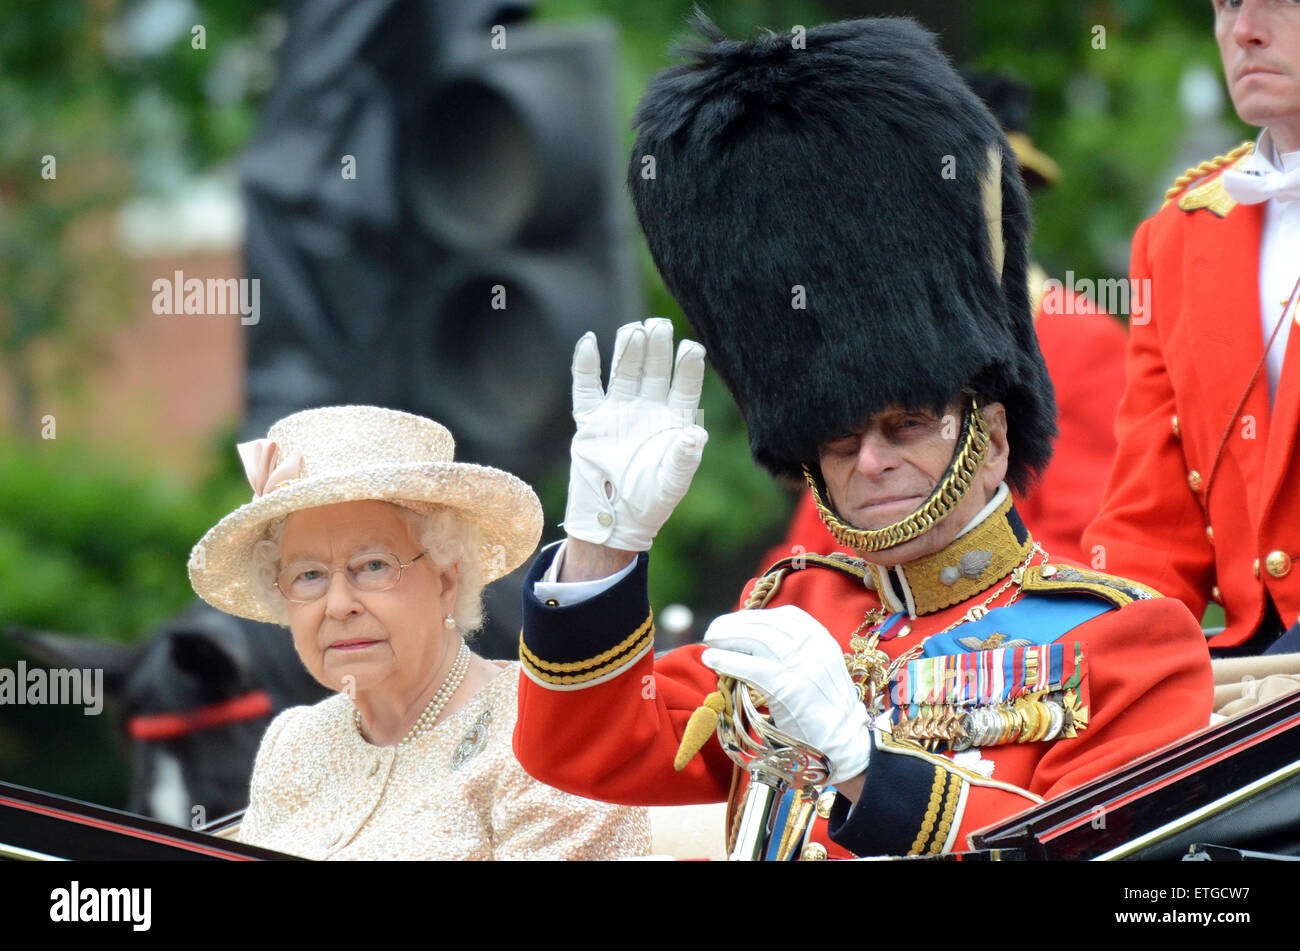 the-queen-and-prince-philip-trooping-of-the-colour-in-the-mall-london-ETGCW7.jpg